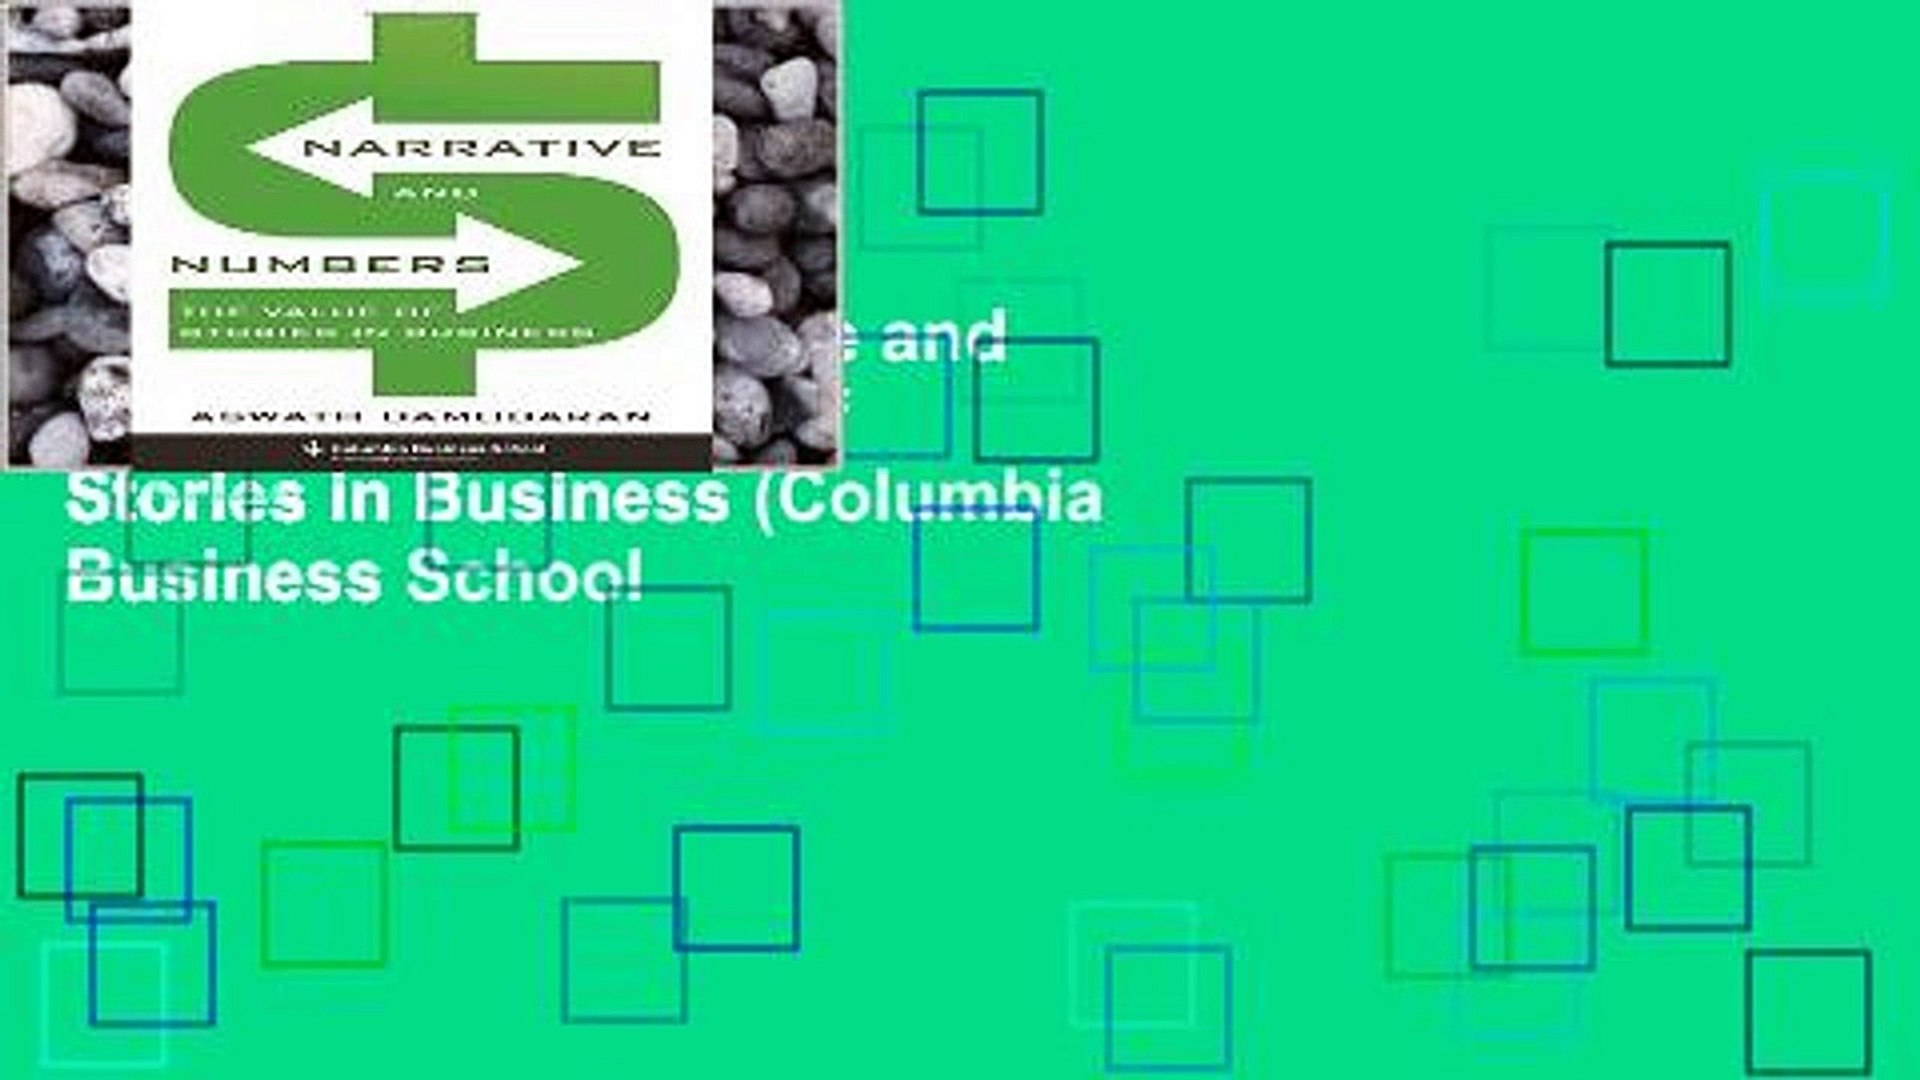 AudioEbooks Narrative and Numbers: The Value of Stories in Business (Columbia Business School